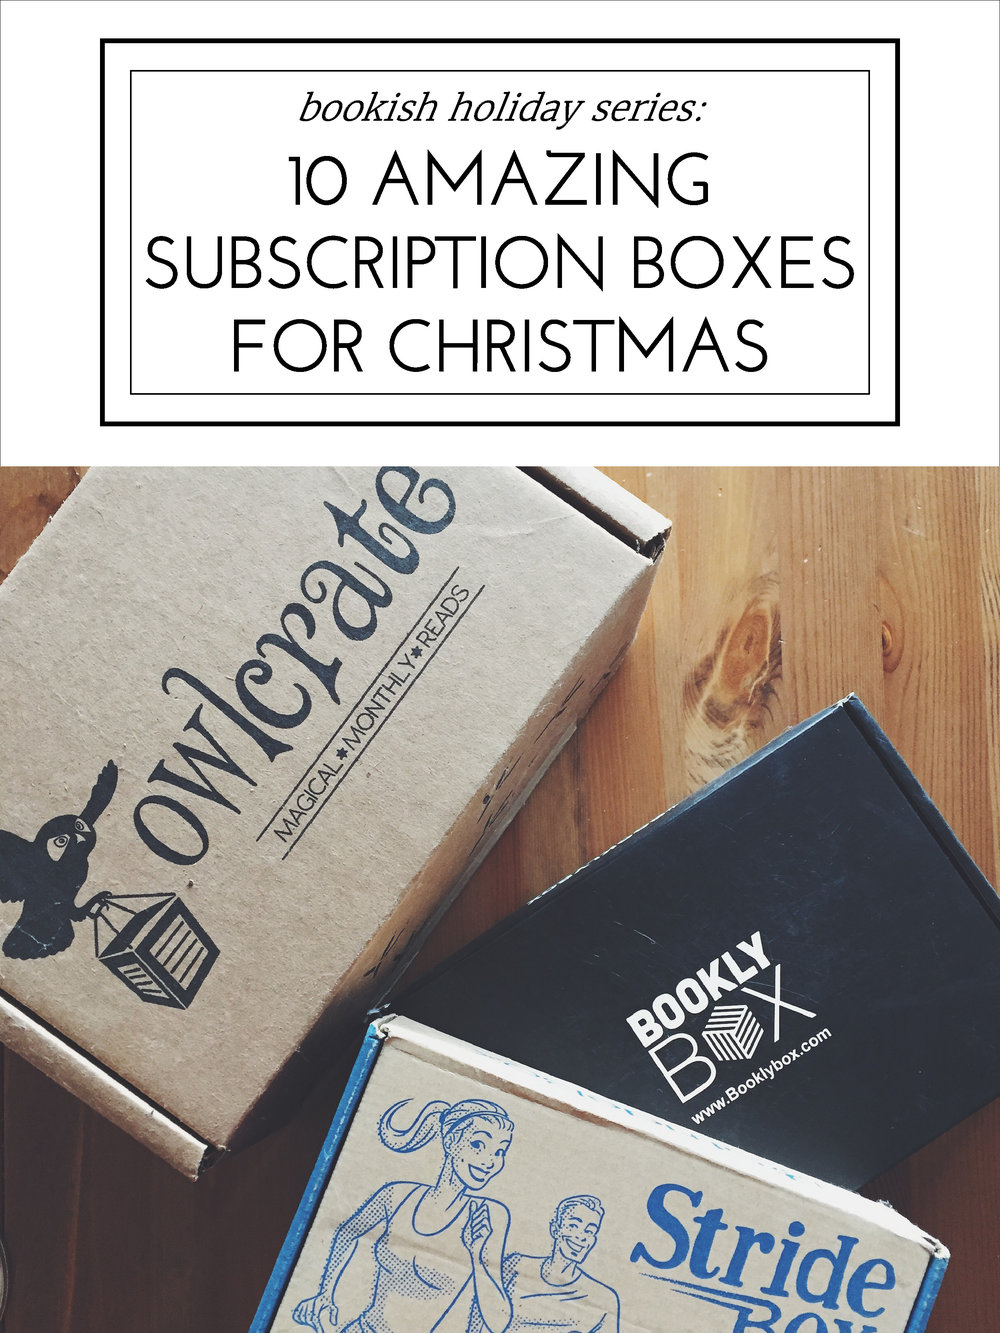 10 Amazing Subscription Boxes for Christmas